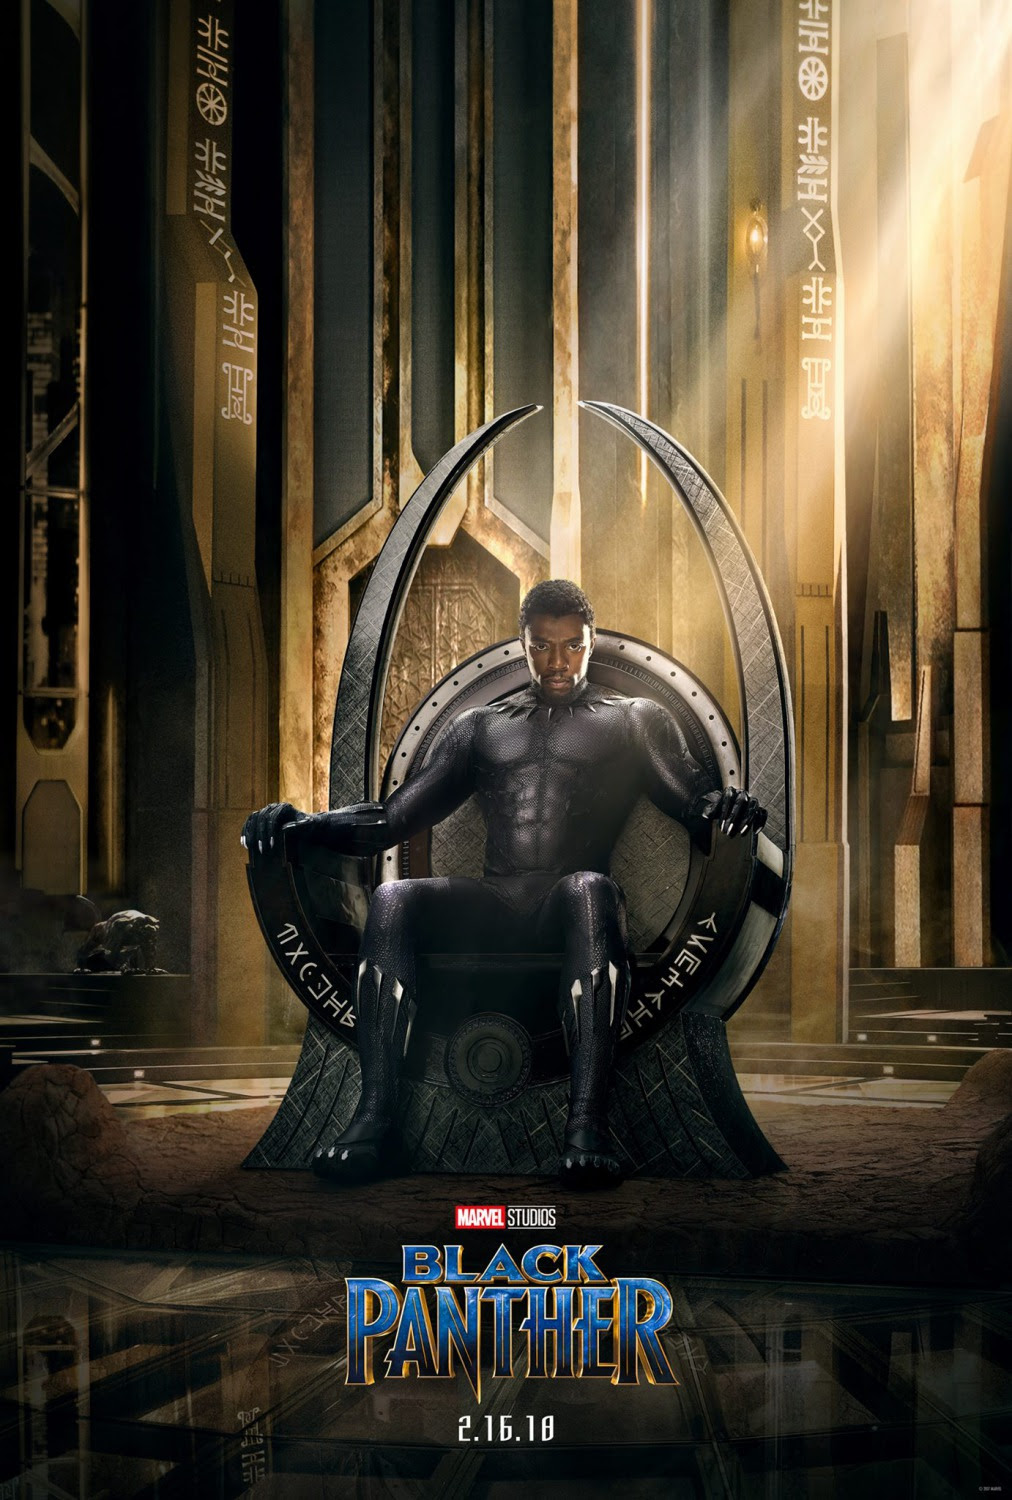 Extra Large Movie Poster Image for Black Panther (#1 of 23)